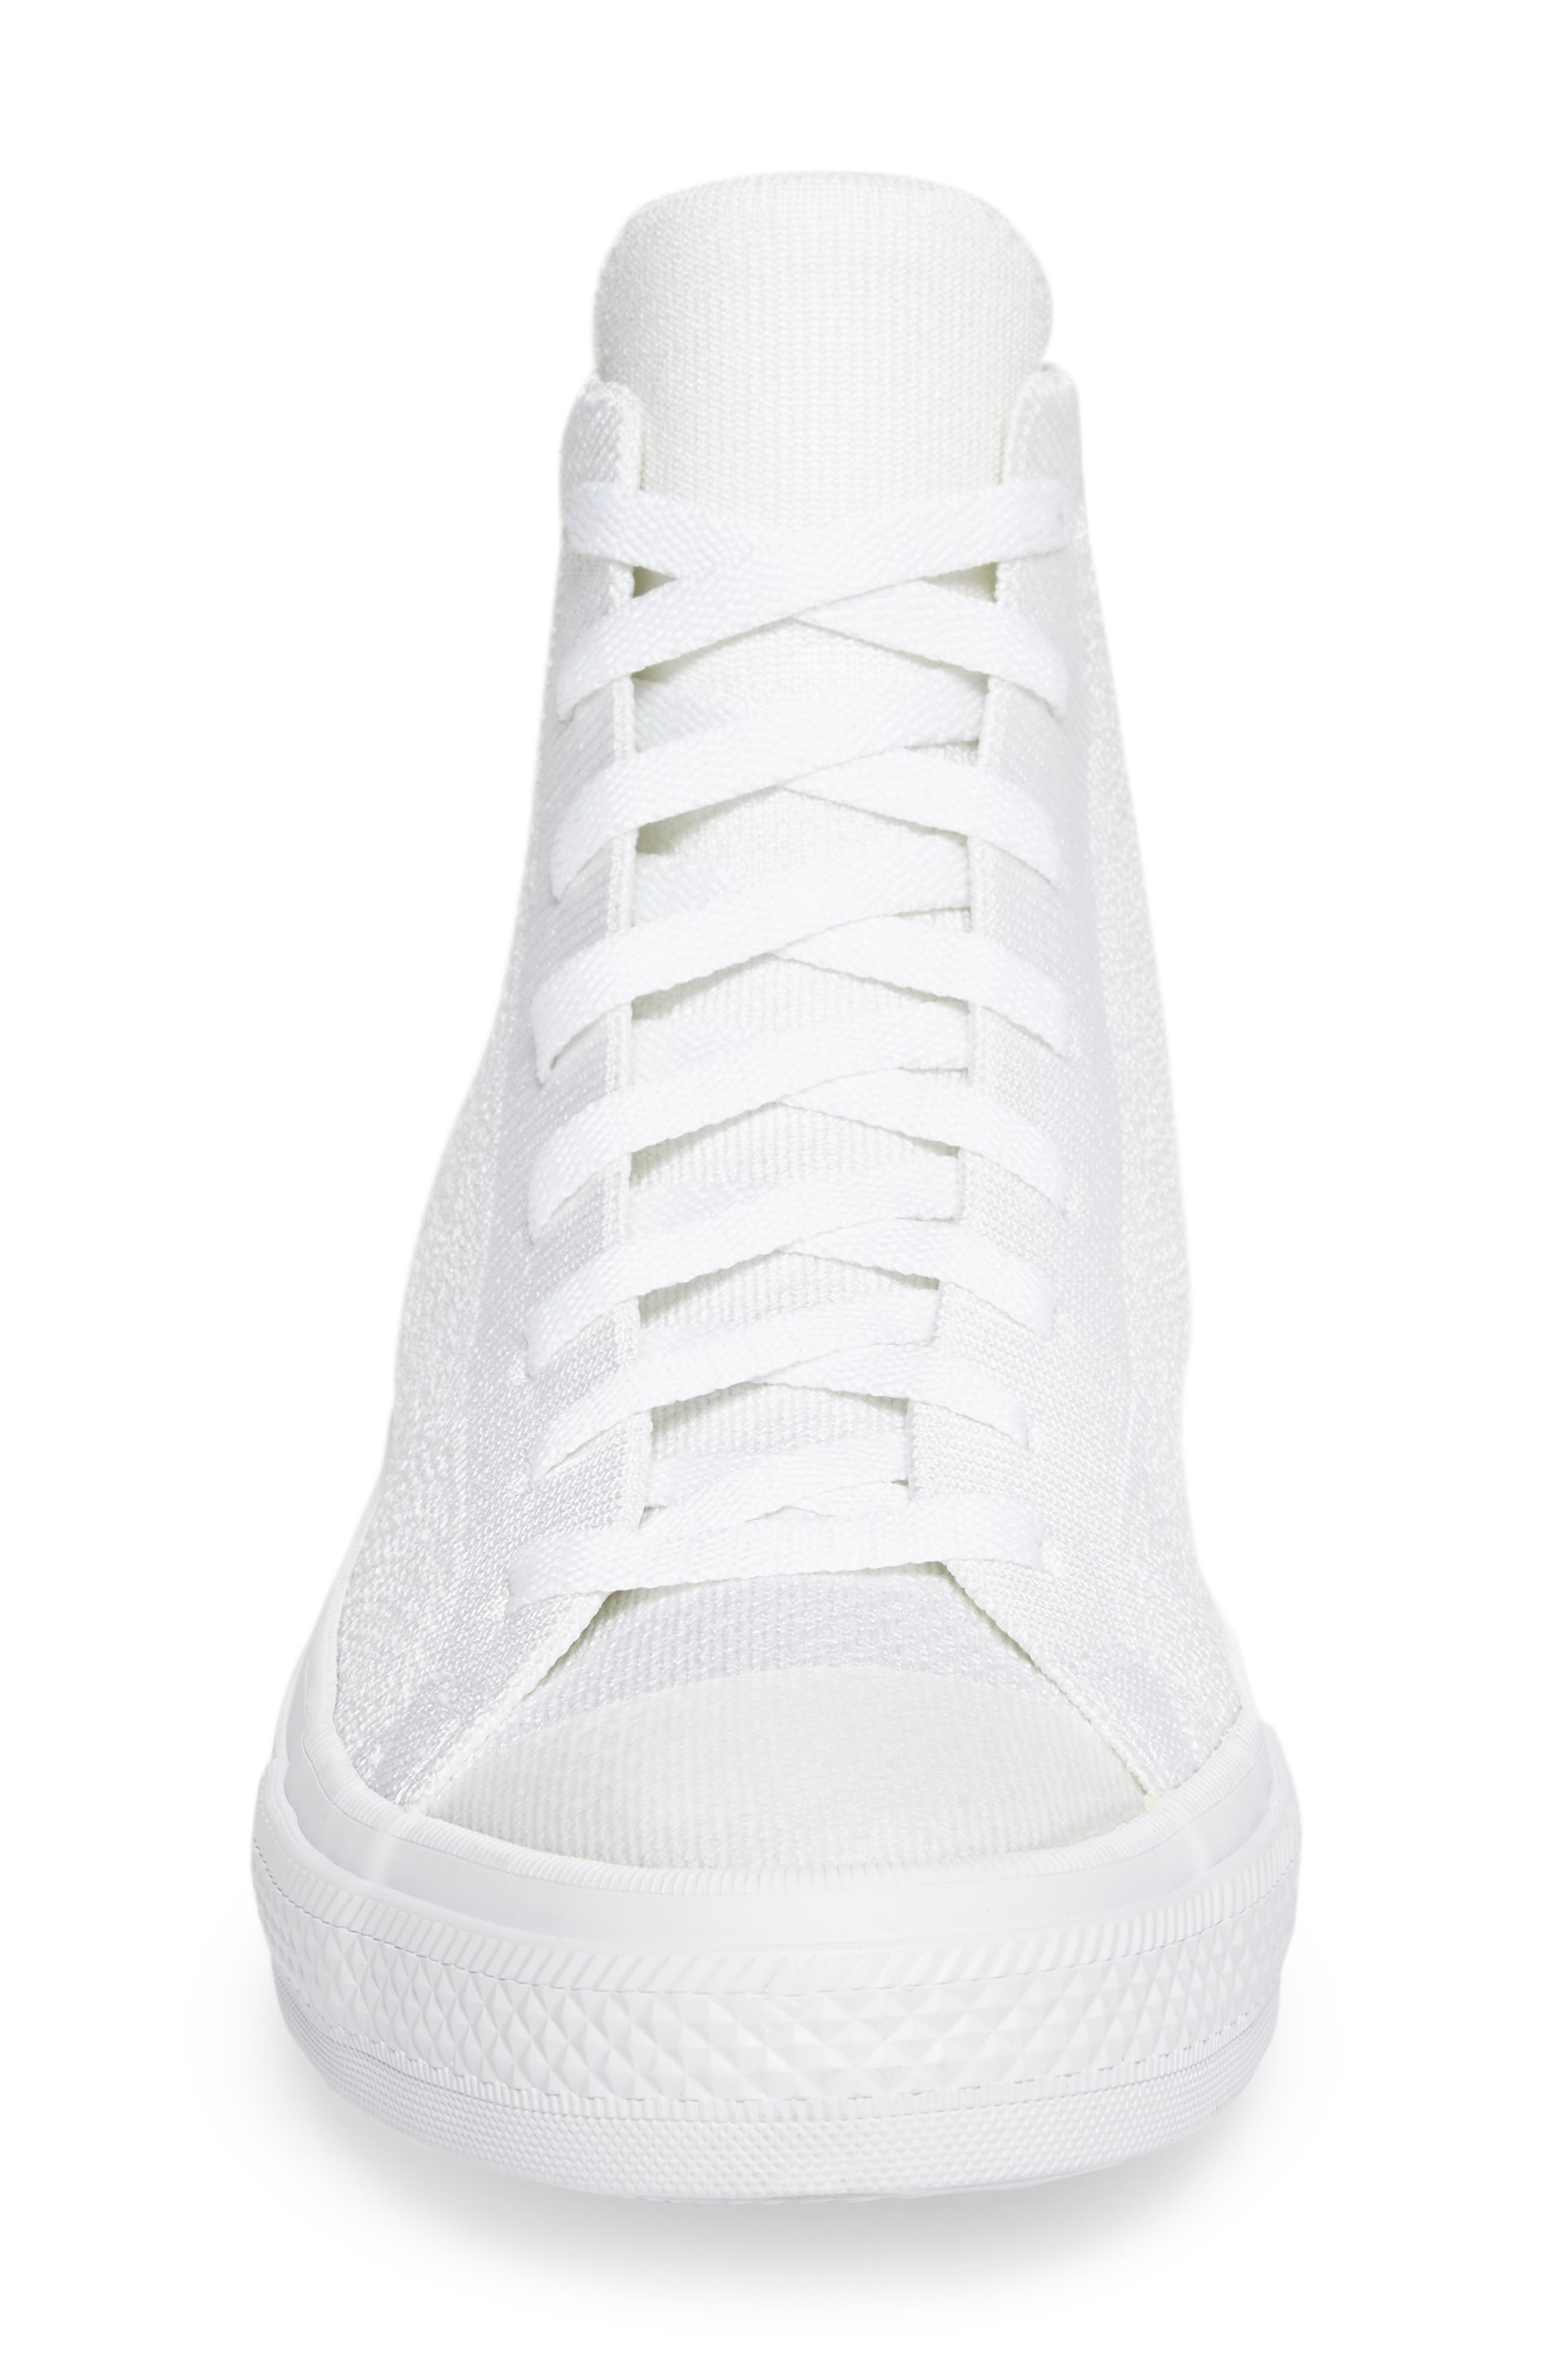 Chuck Taylor<sup>®</sup> All Star<sup>®</sup> Flyknit Hi Sneaker,                             Alternate thumbnail 22, color,